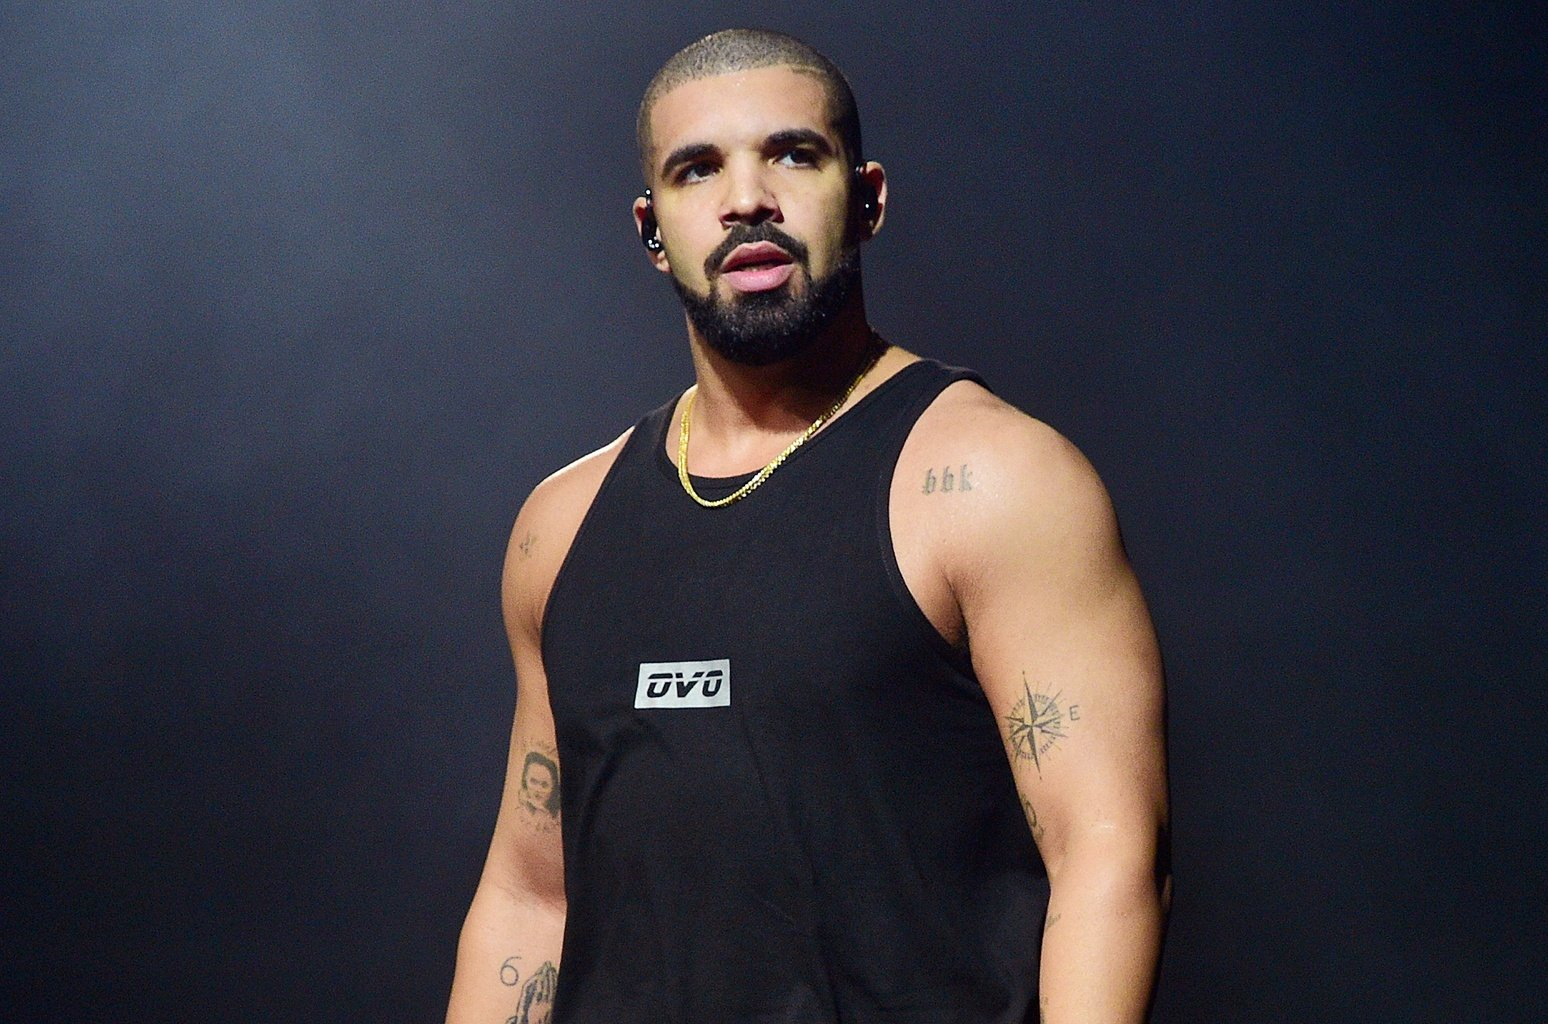 drake performance aug 2016 billboard 1548 10 Things You Didn't Know About Drake